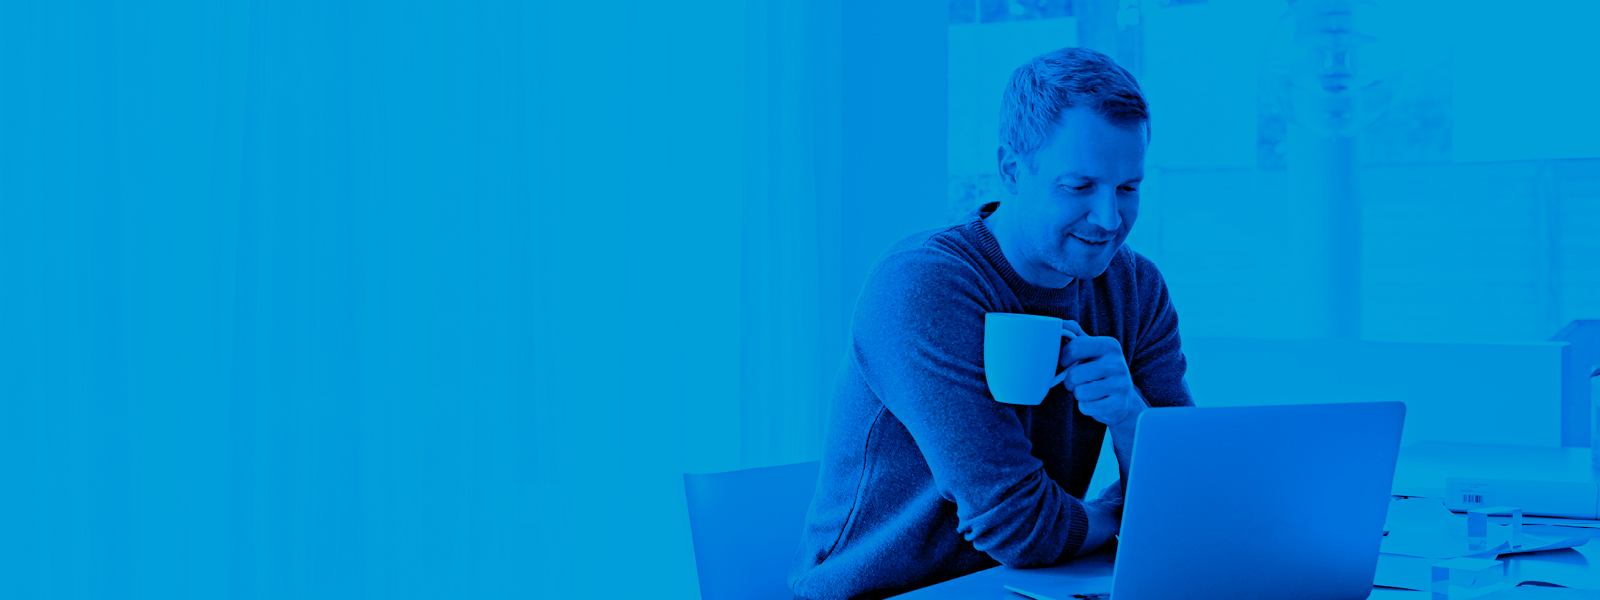 Image of man drinking coffee while he works